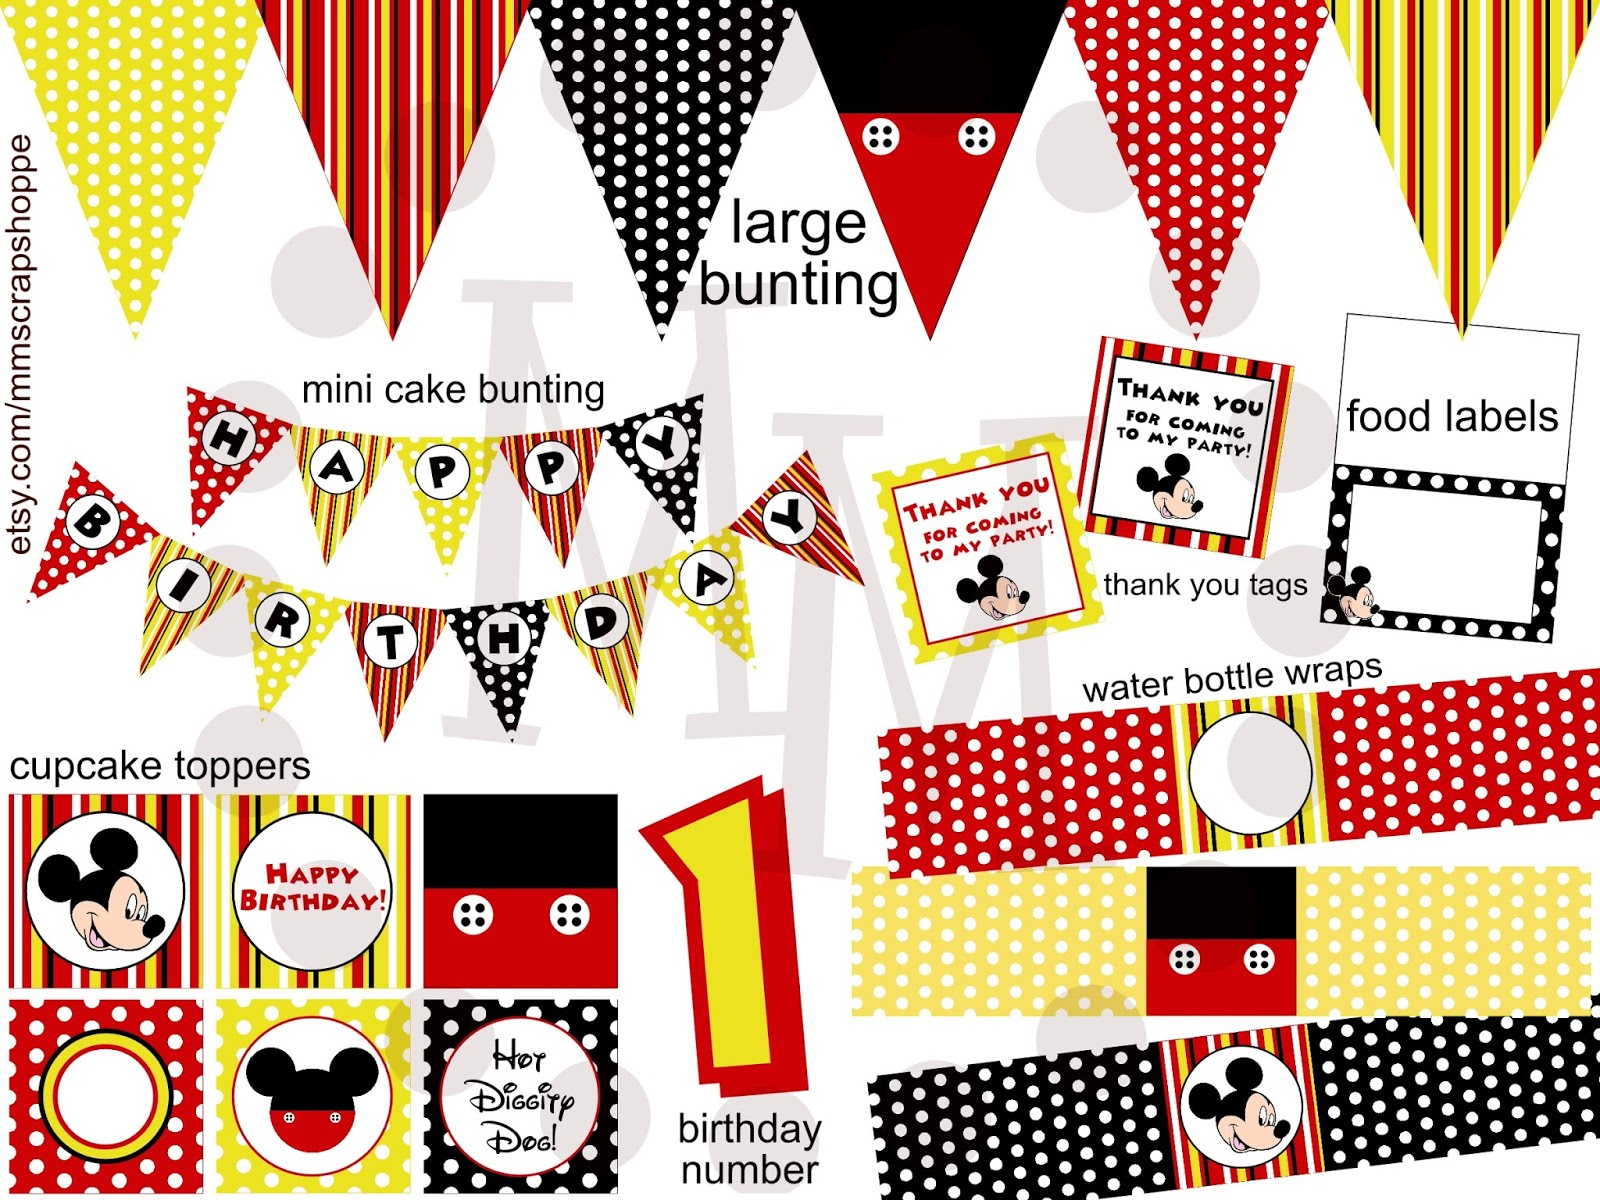 Fabulous I am also offering a nd version of the Mickey Mouse birthday invitation that will allow for a photo of the birthday boy or girl to be added